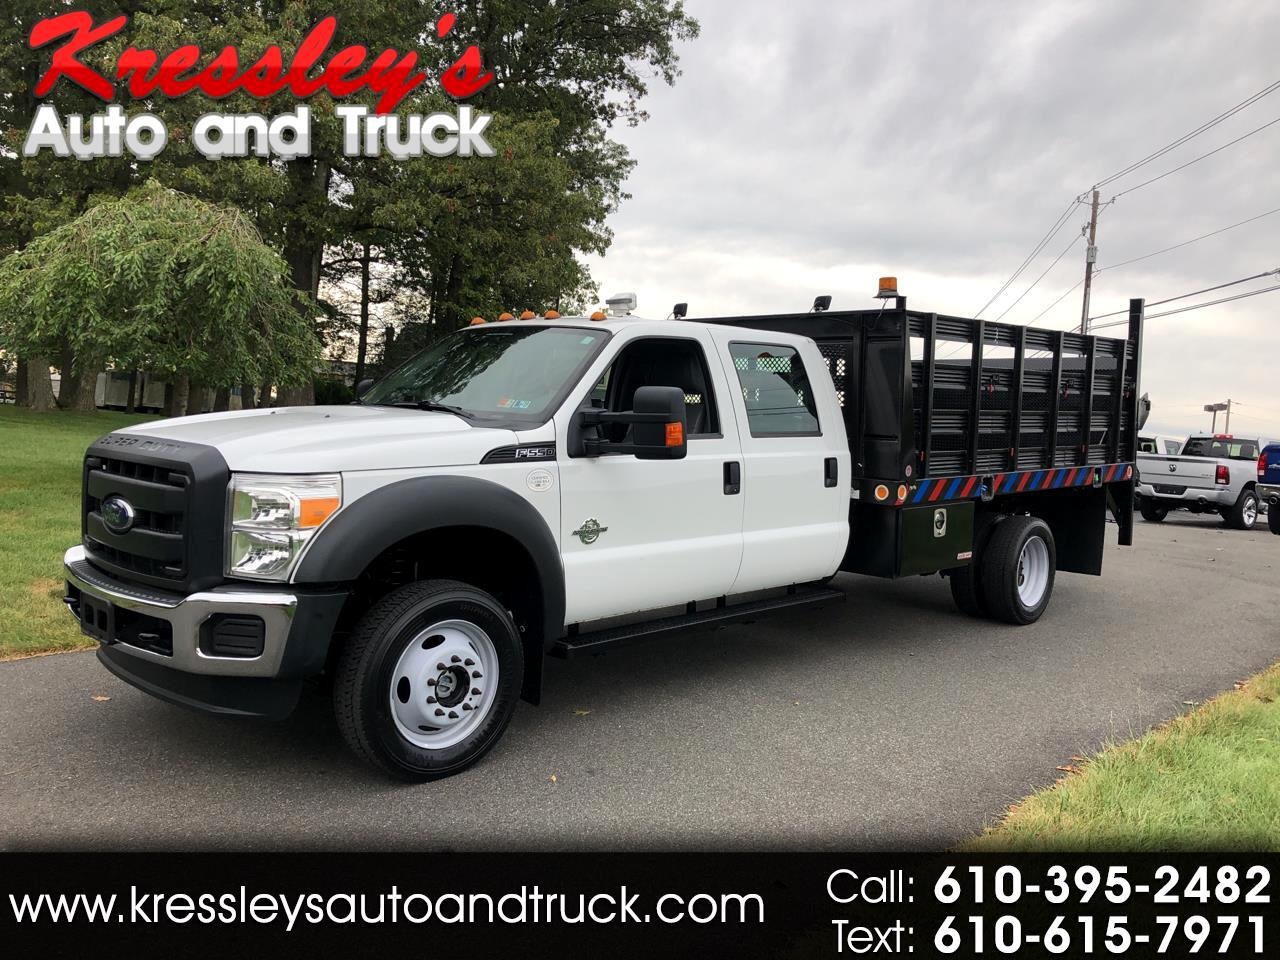 2012 Ford Super Duty F-550 DRW 4WD Crew Cab 176